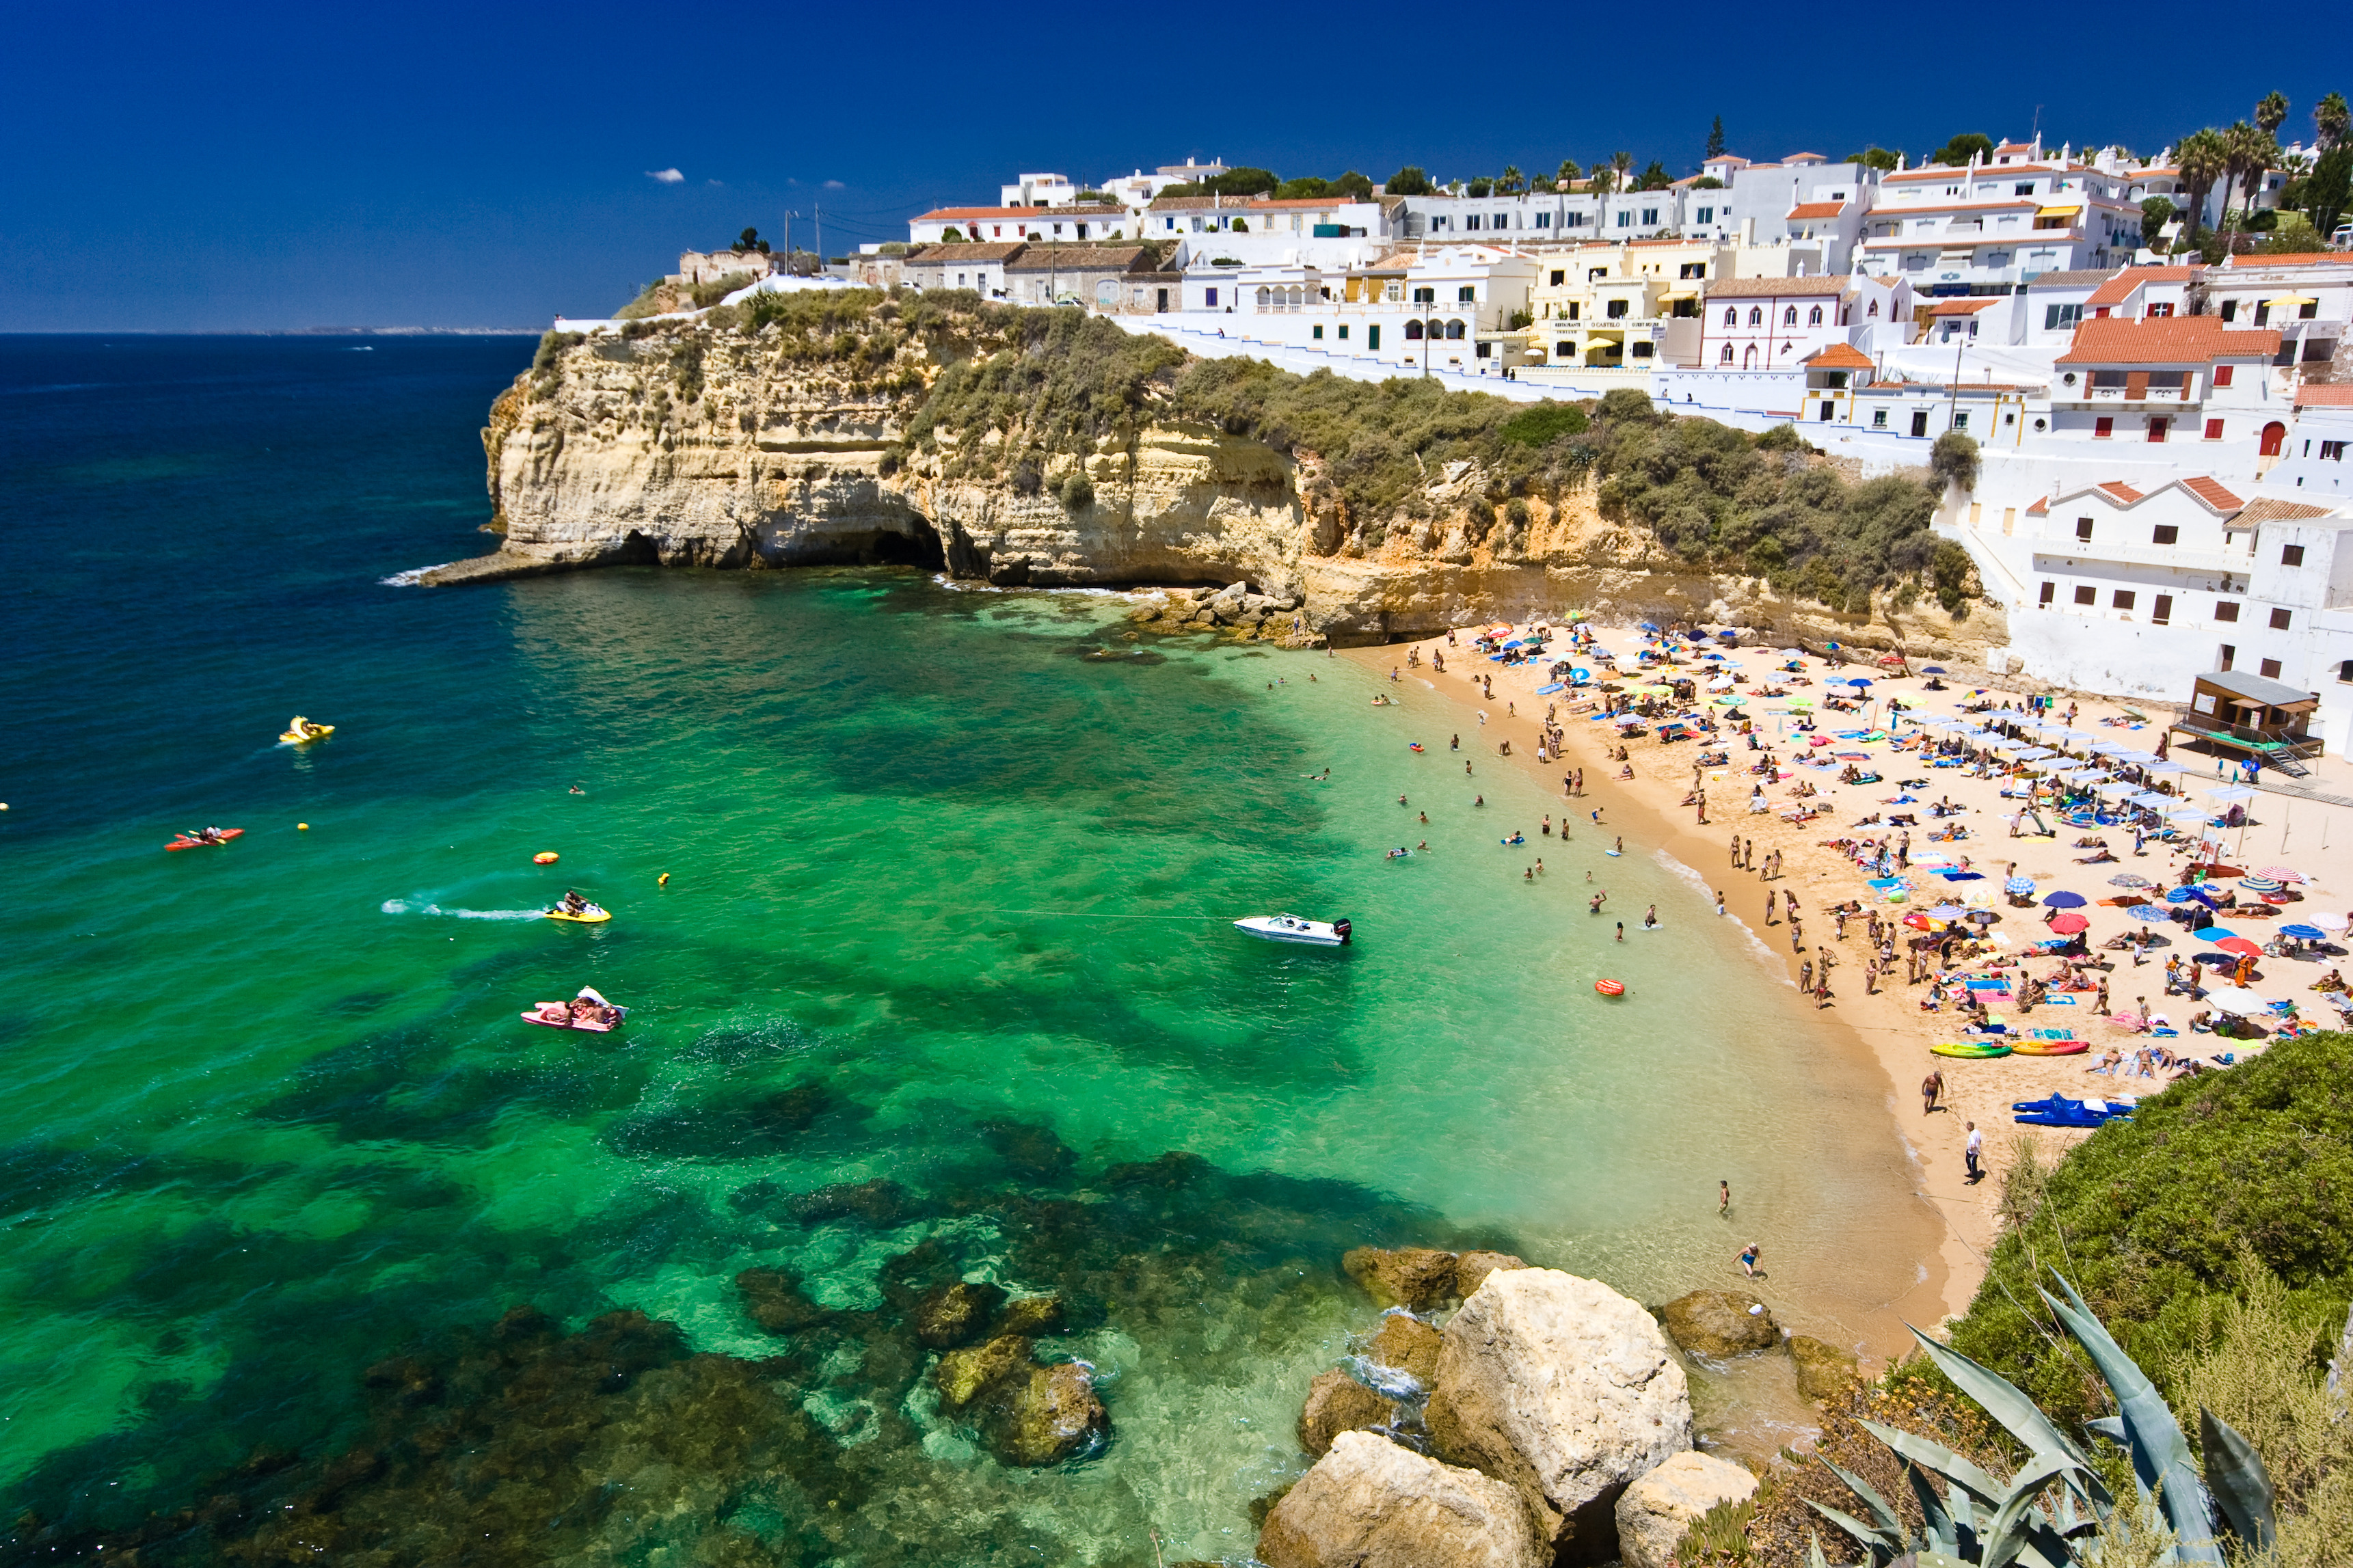 portugal s algarve versus spain s costa del sol finding the best beach value overseas. Black Bedroom Furniture Sets. Home Design Ideas